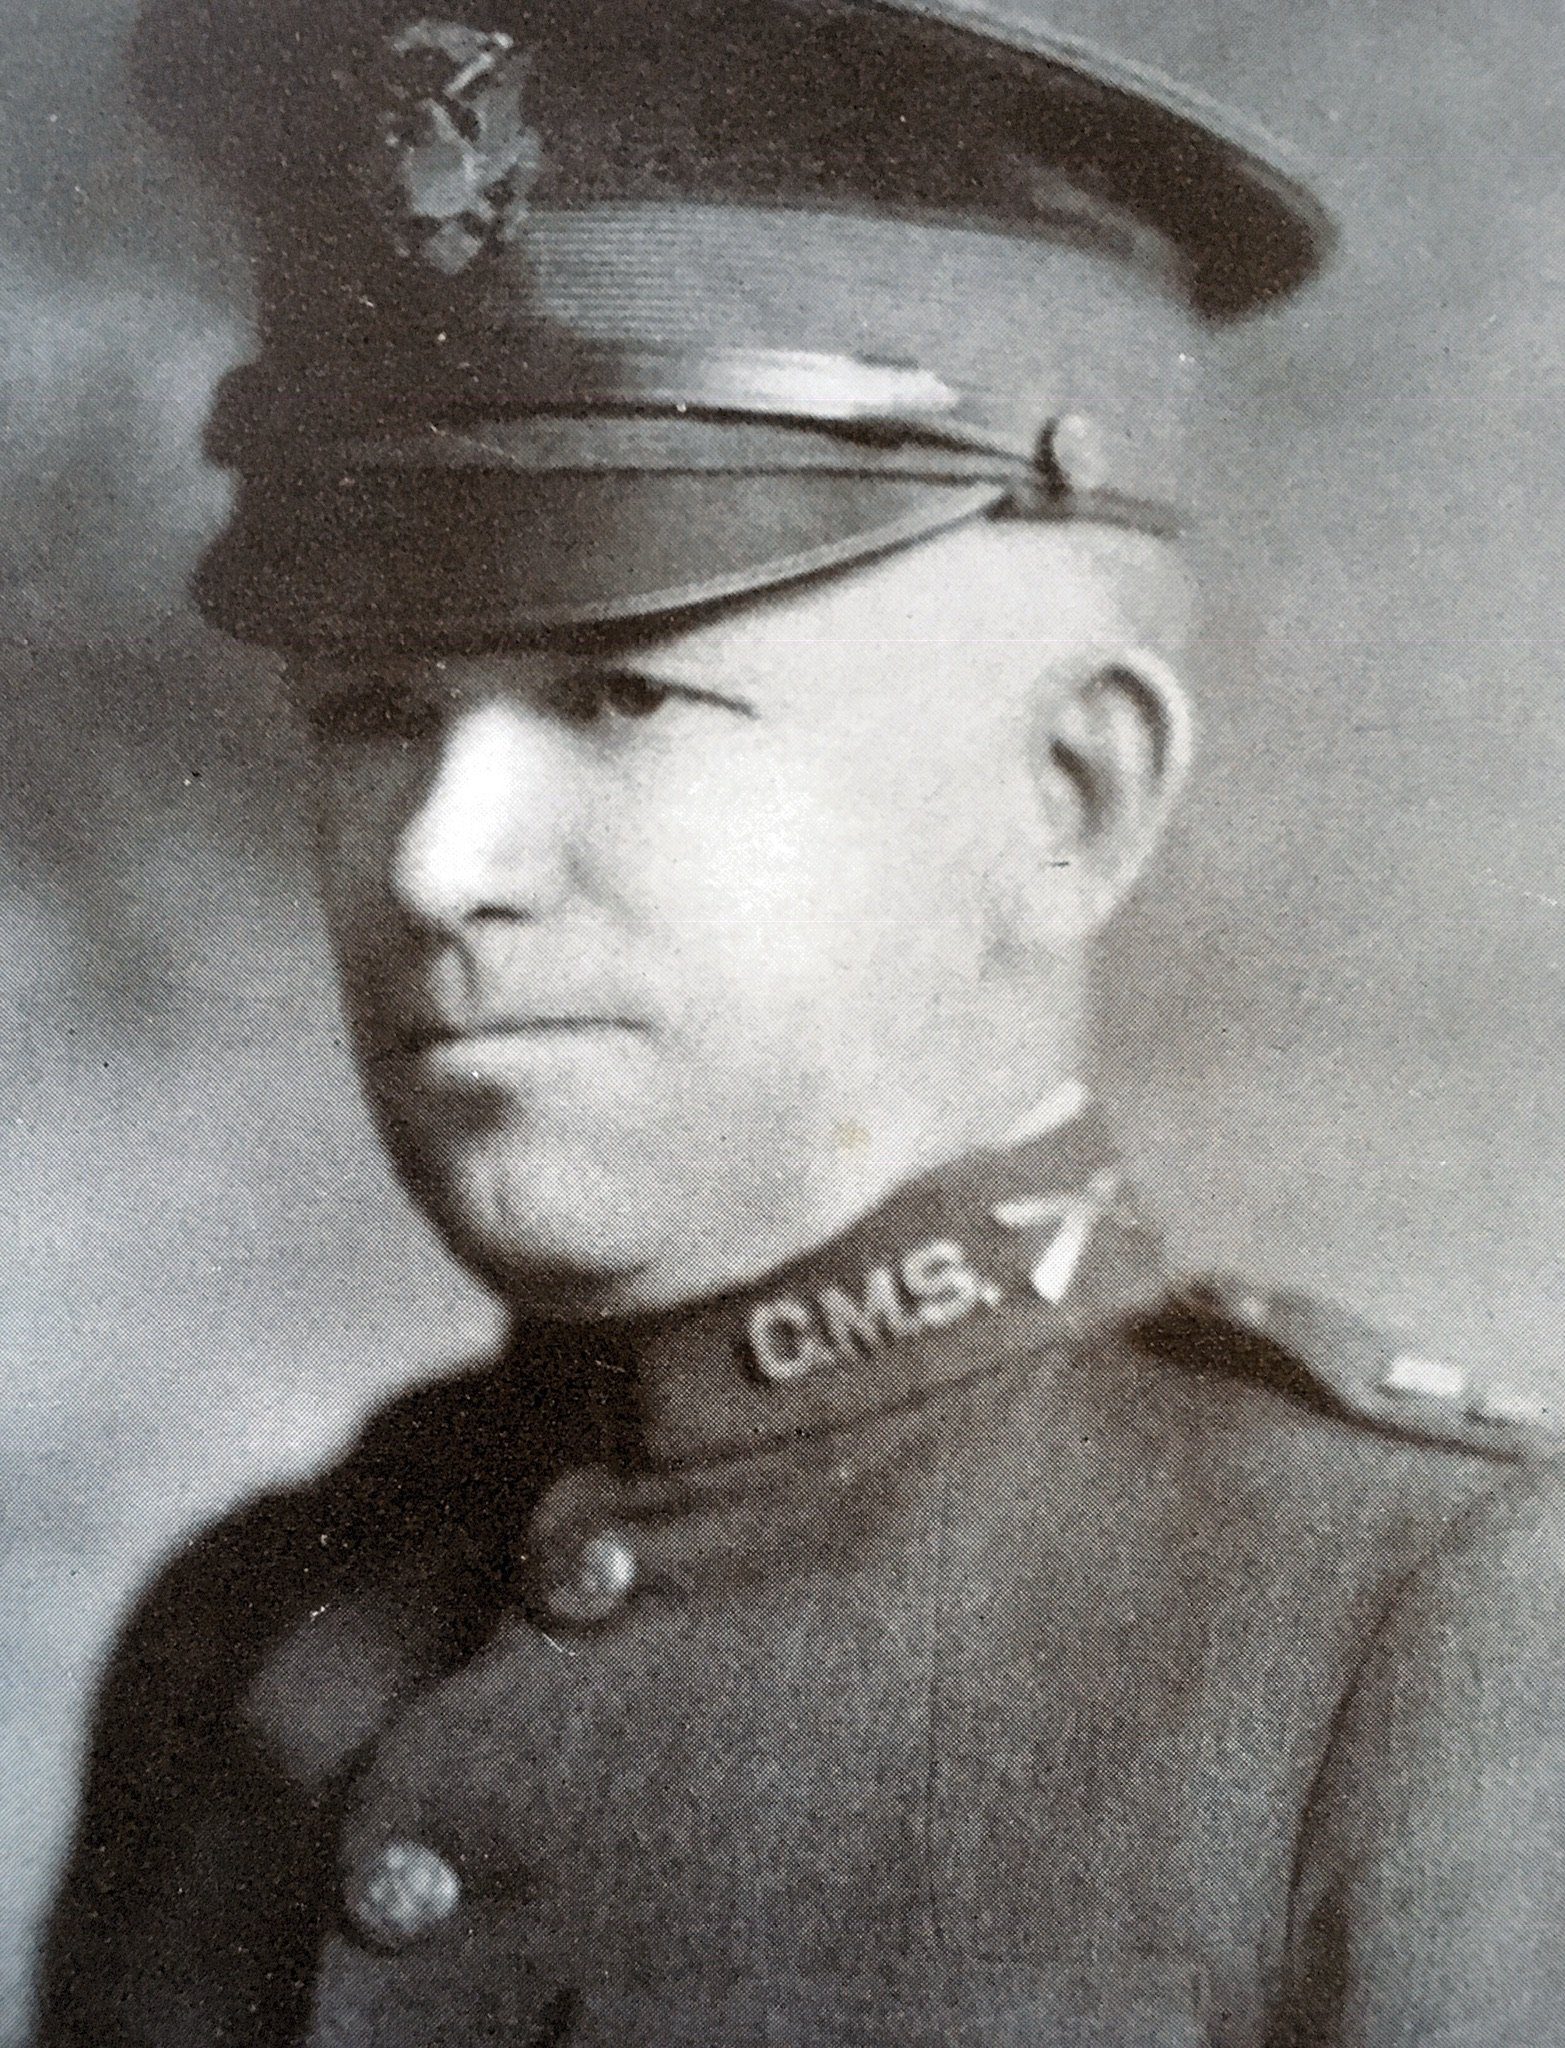 H. B. Moore from 1925 Greenbrier Military School yearbook.